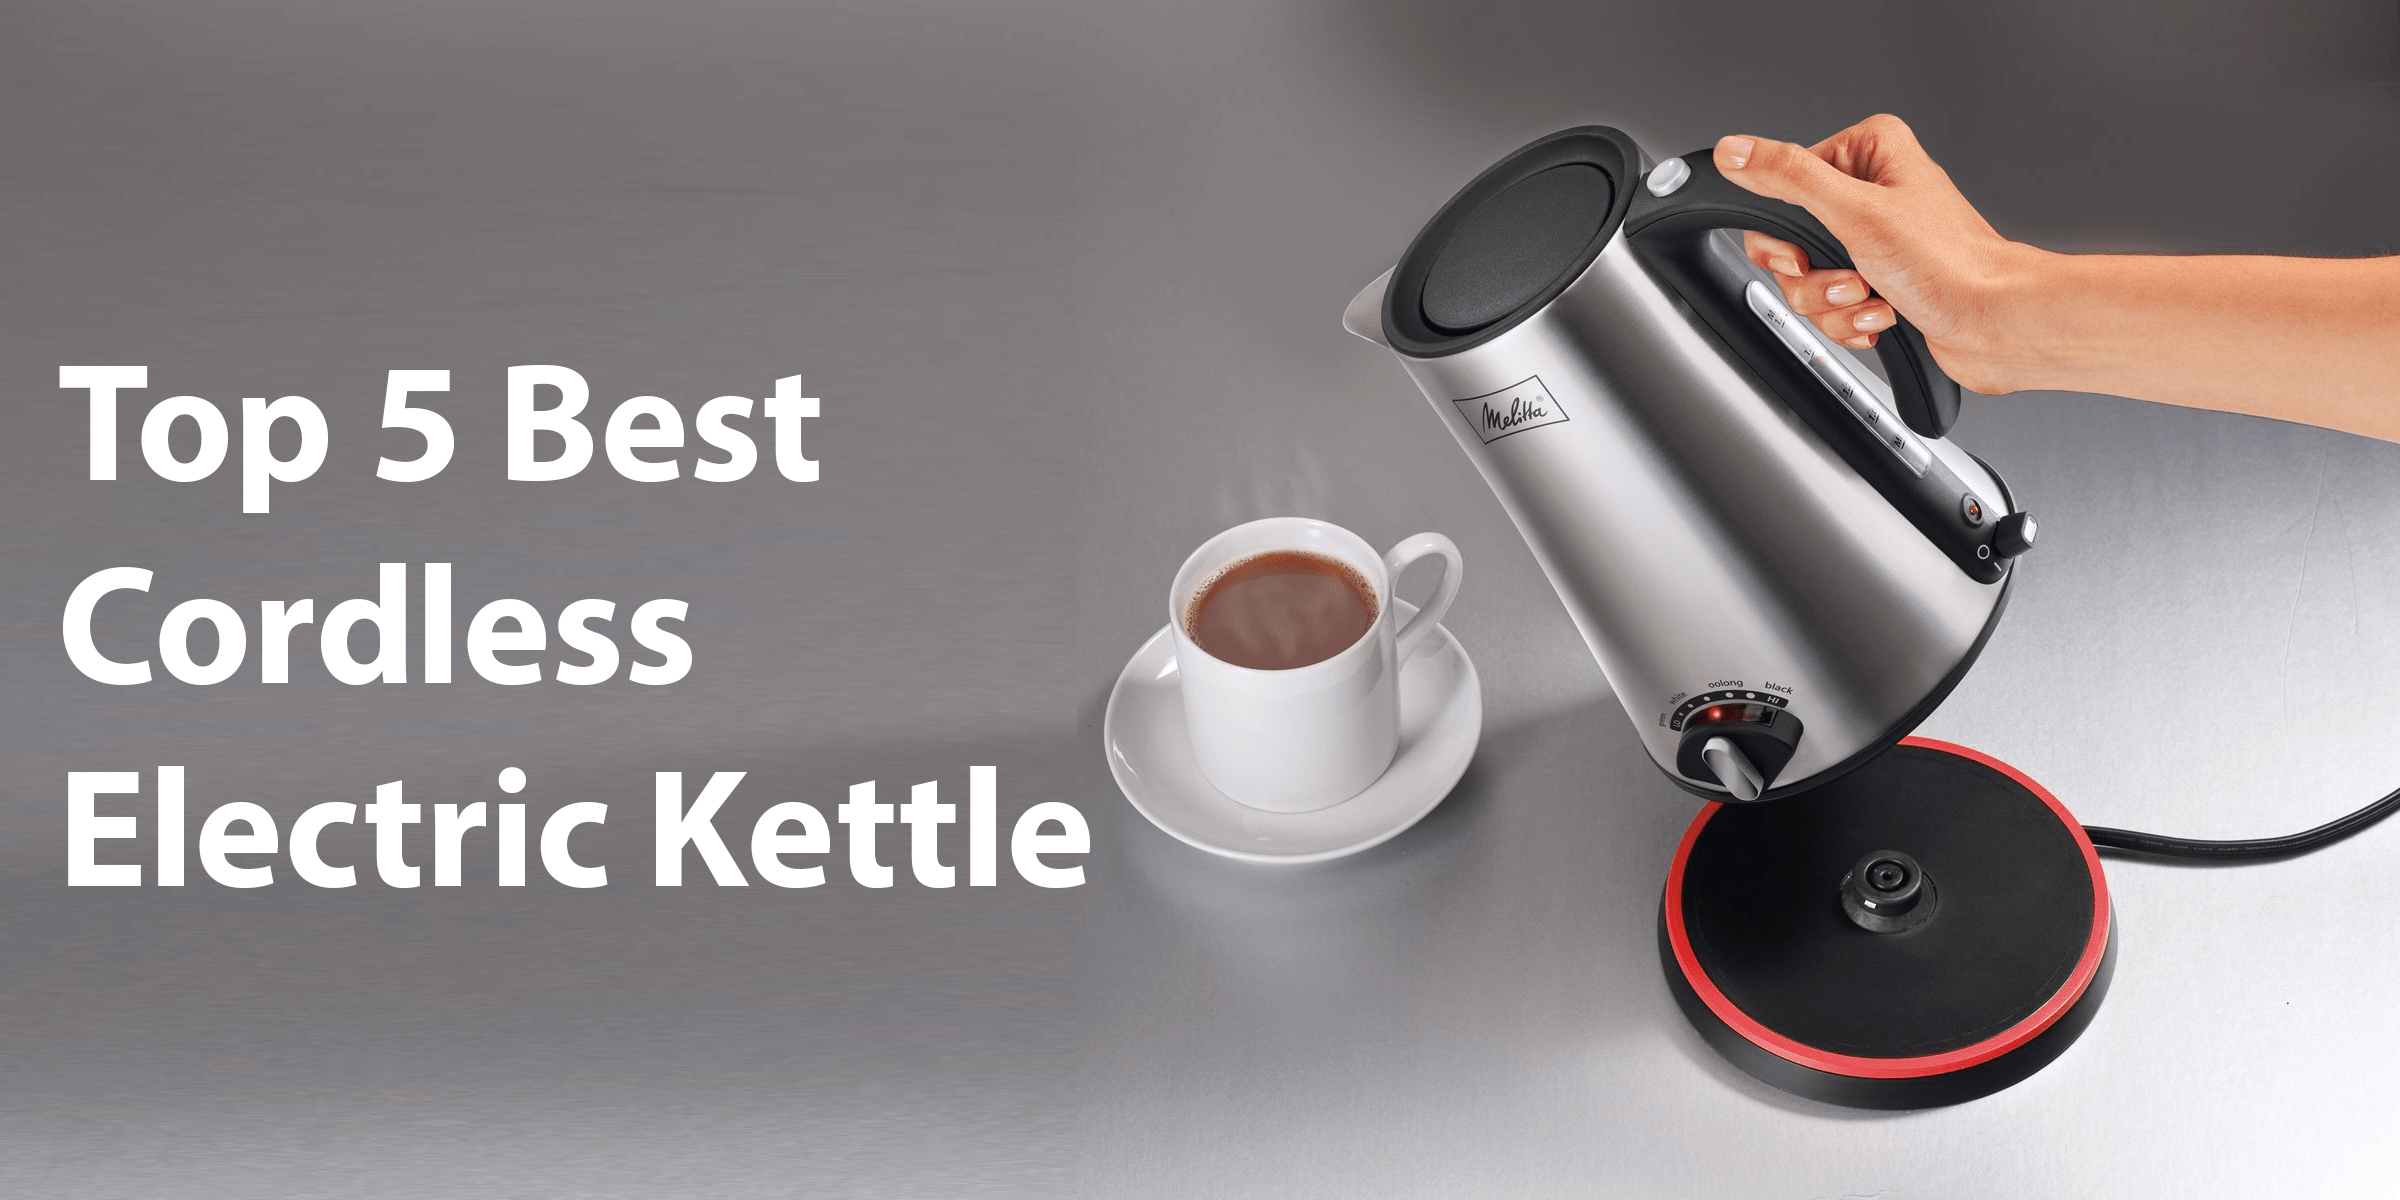 Top 5 Best Cordless Electric Kettle